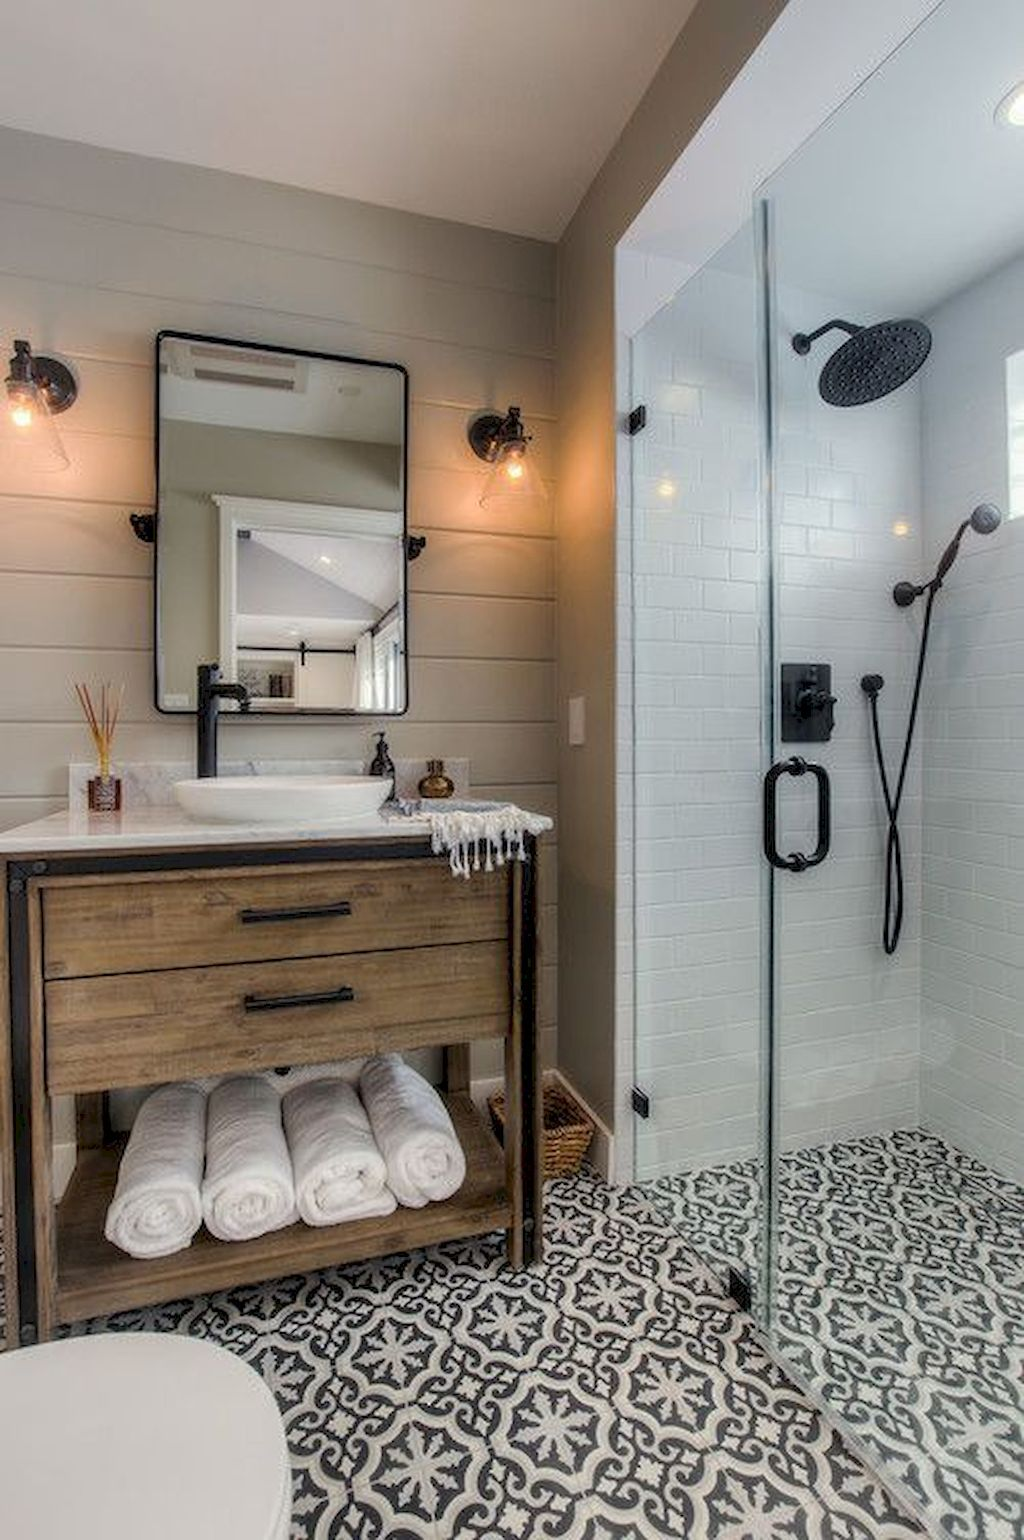 60 Vintage Farmhouse Bathroom Remodel Ideas On A Budget  Vintage Unique Austin Tx Bathroom Remodeling Design Ideas